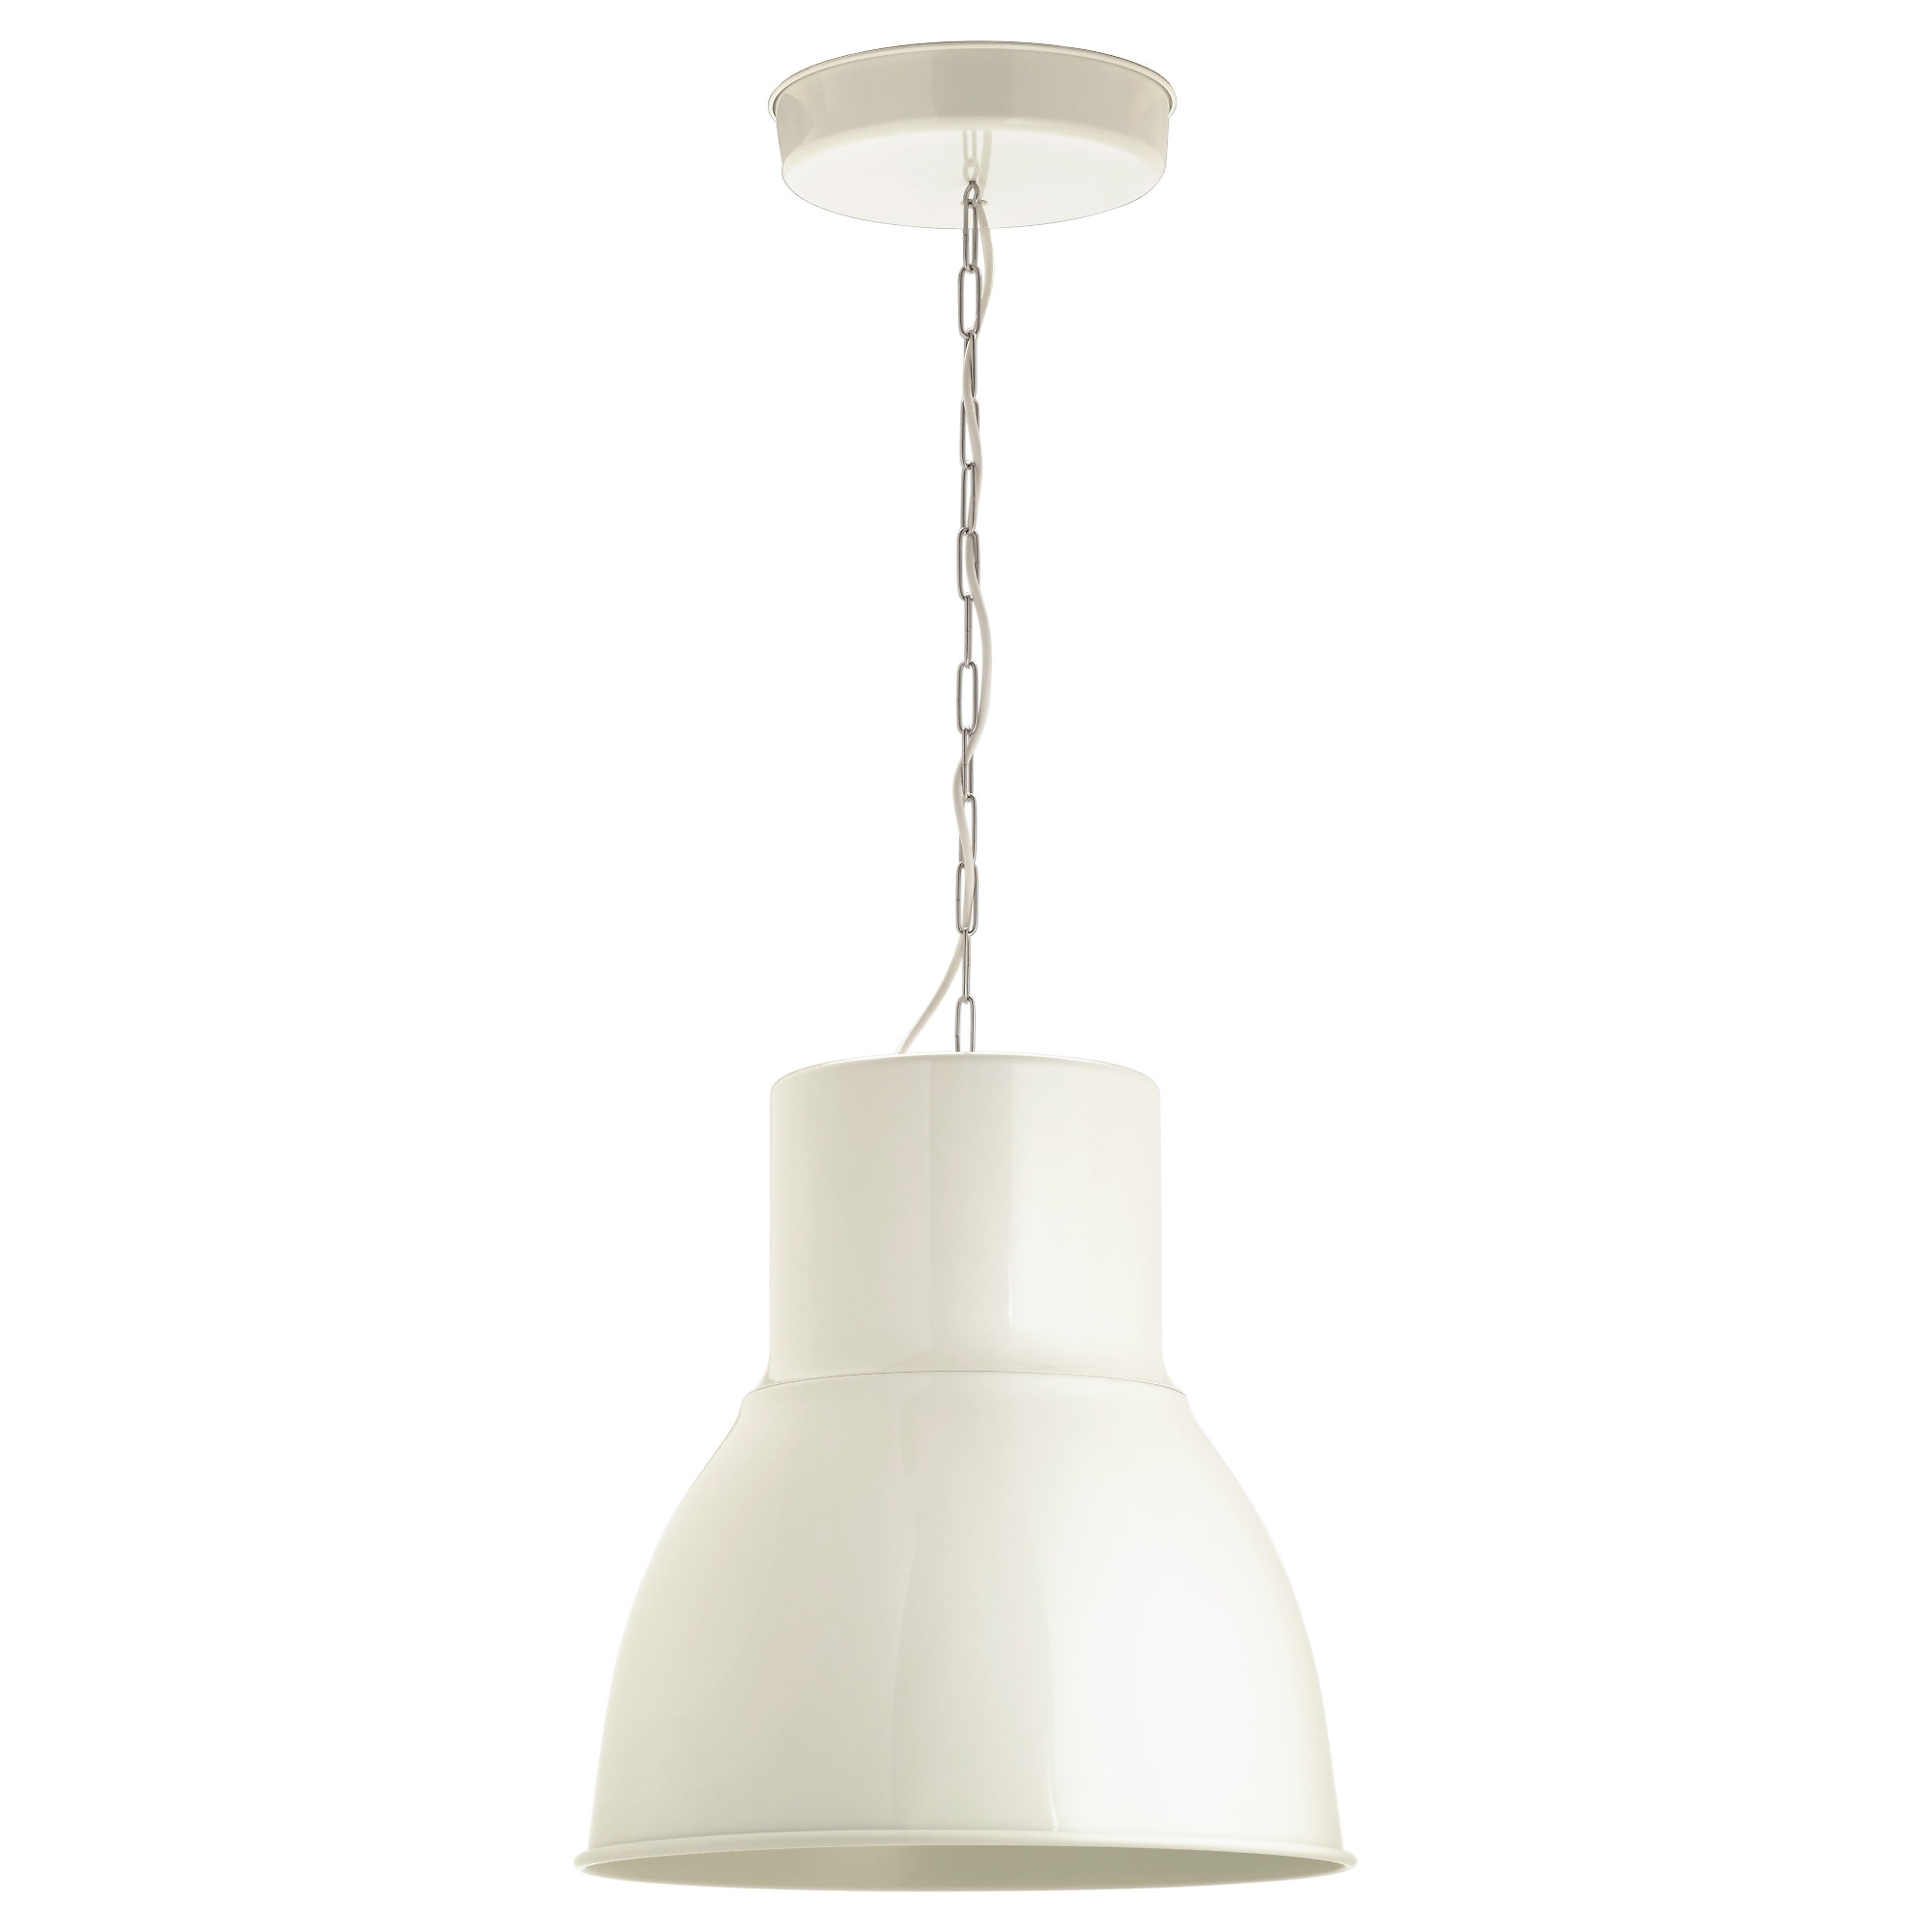 Most Recent Light : Hektar Pendant Lamp White Ceiling Light Cm Ikea Art String Regarding Ikea Outdoor Hanging Lights (View 14 of 20)